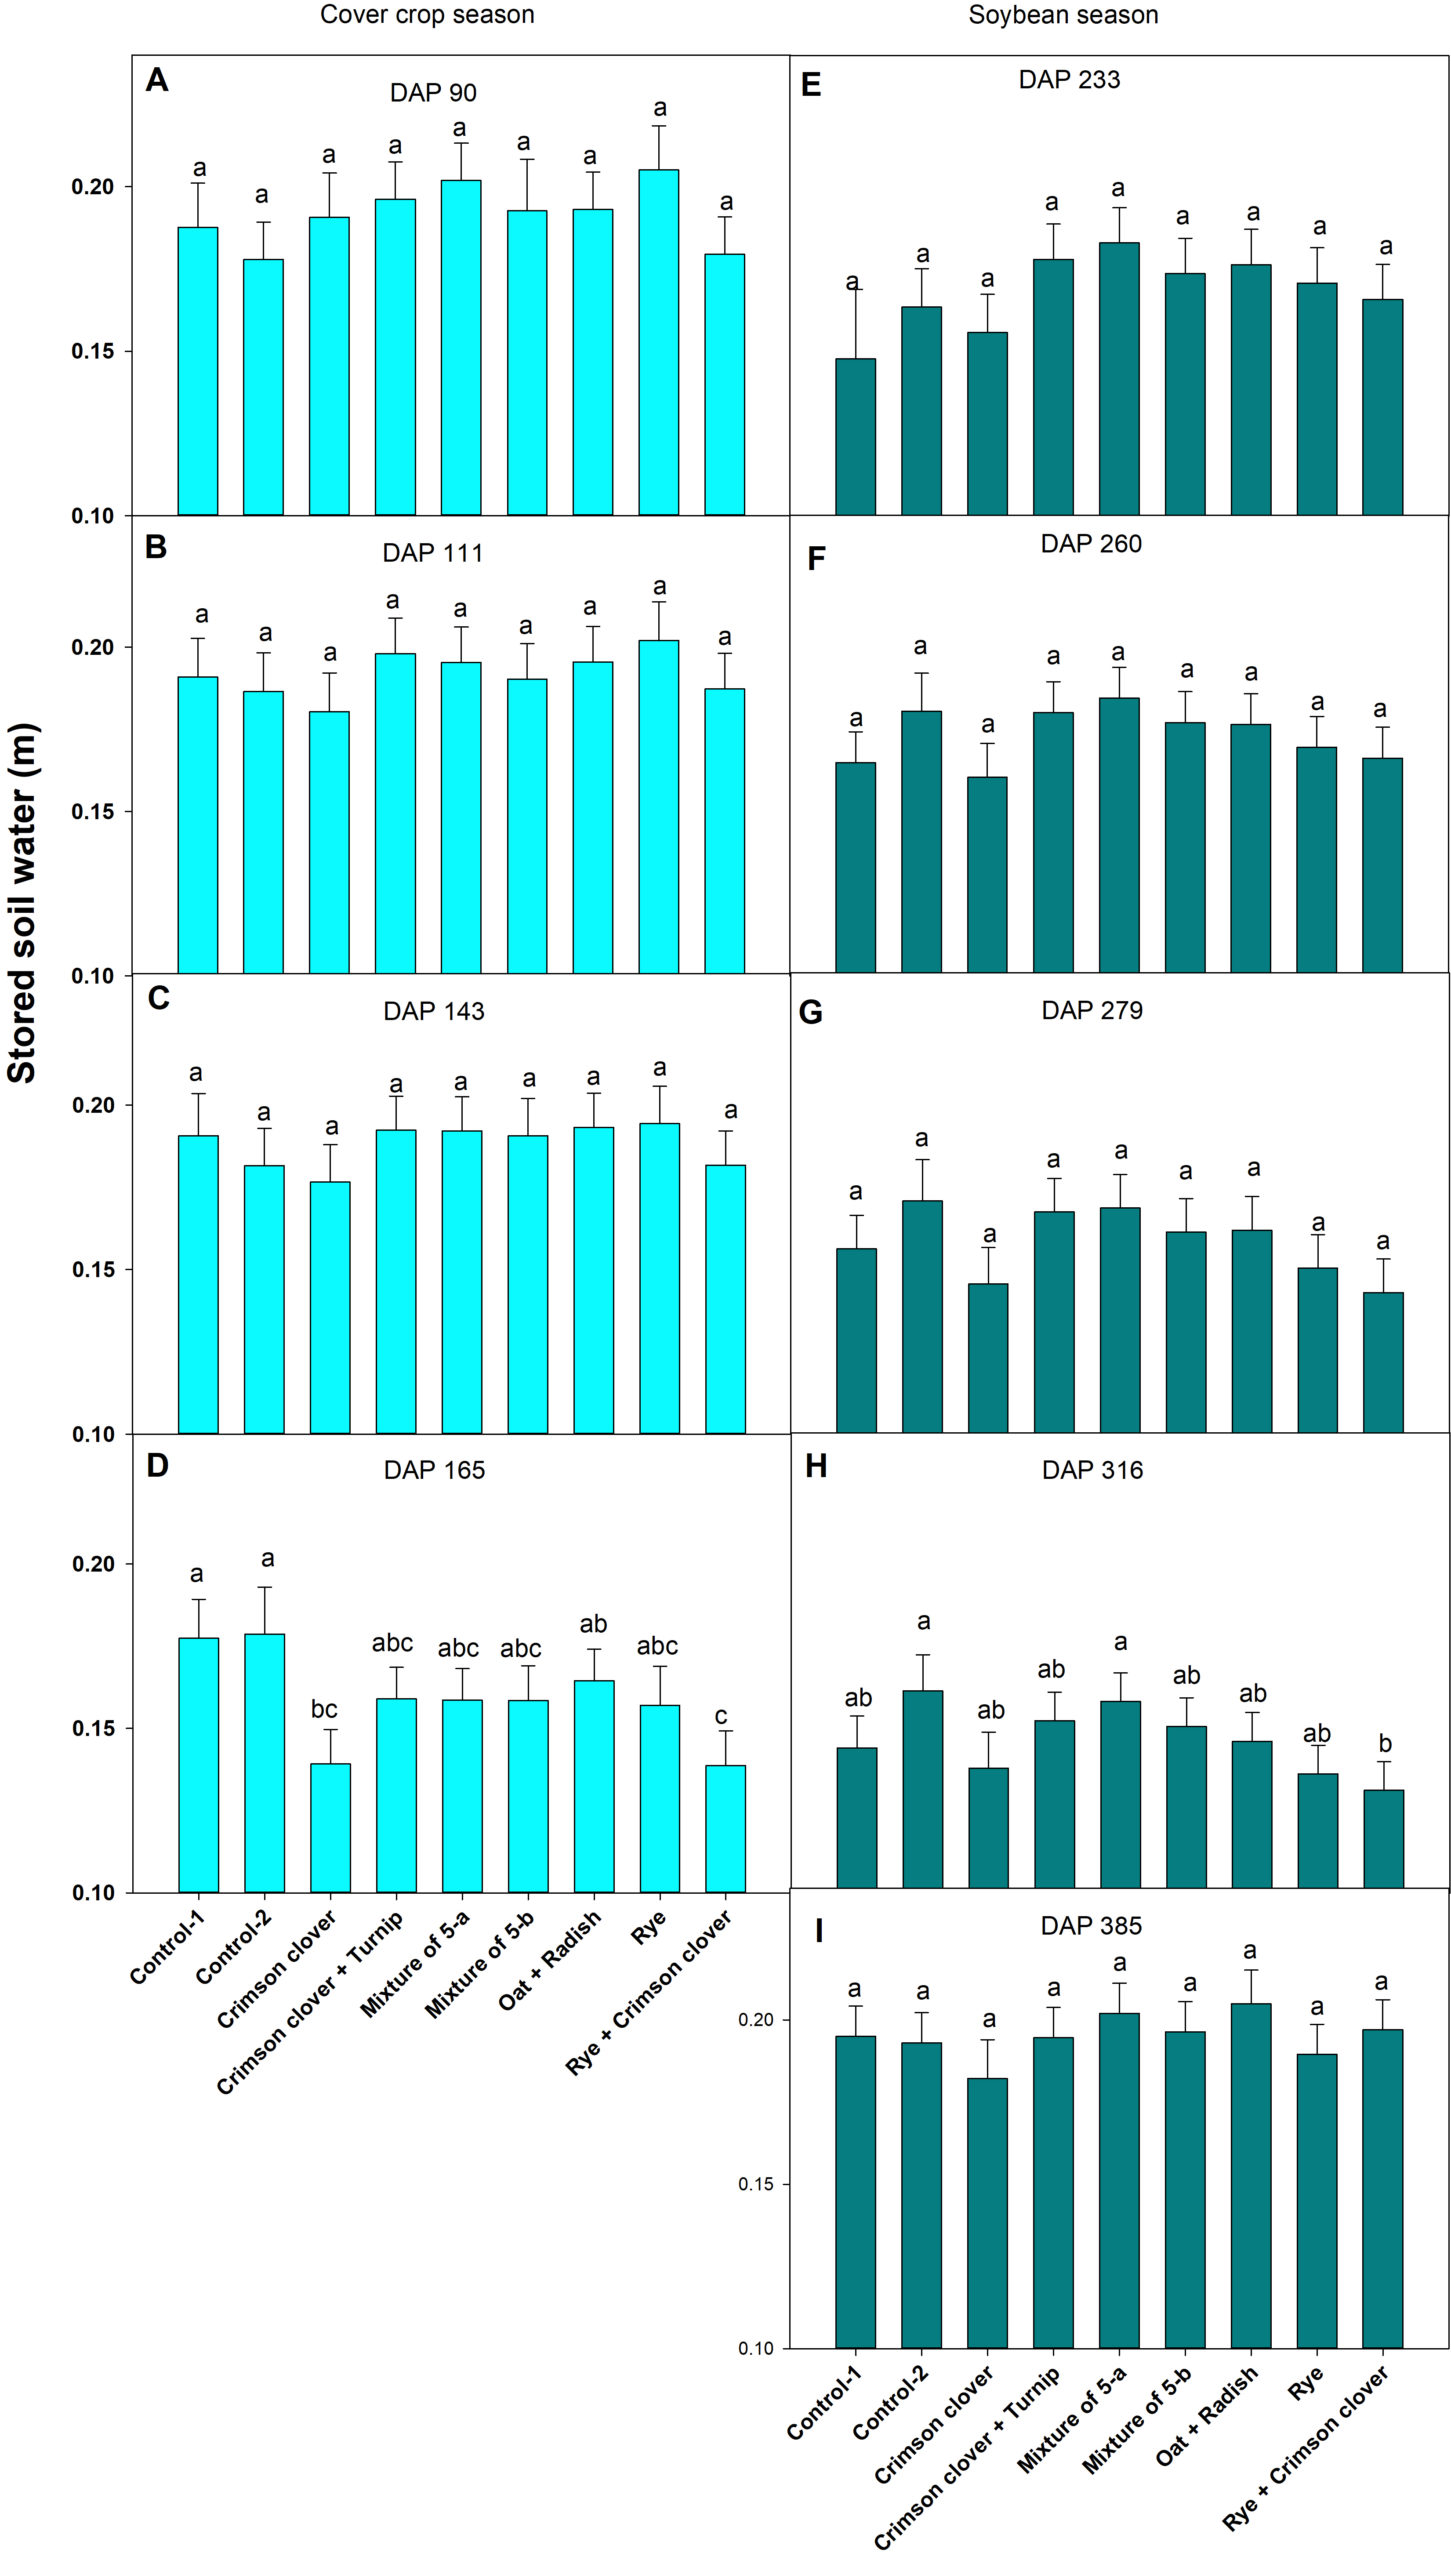 Figure 1. Effect of cover crops on soil moisture content during the cover crop season and the following soybean season.